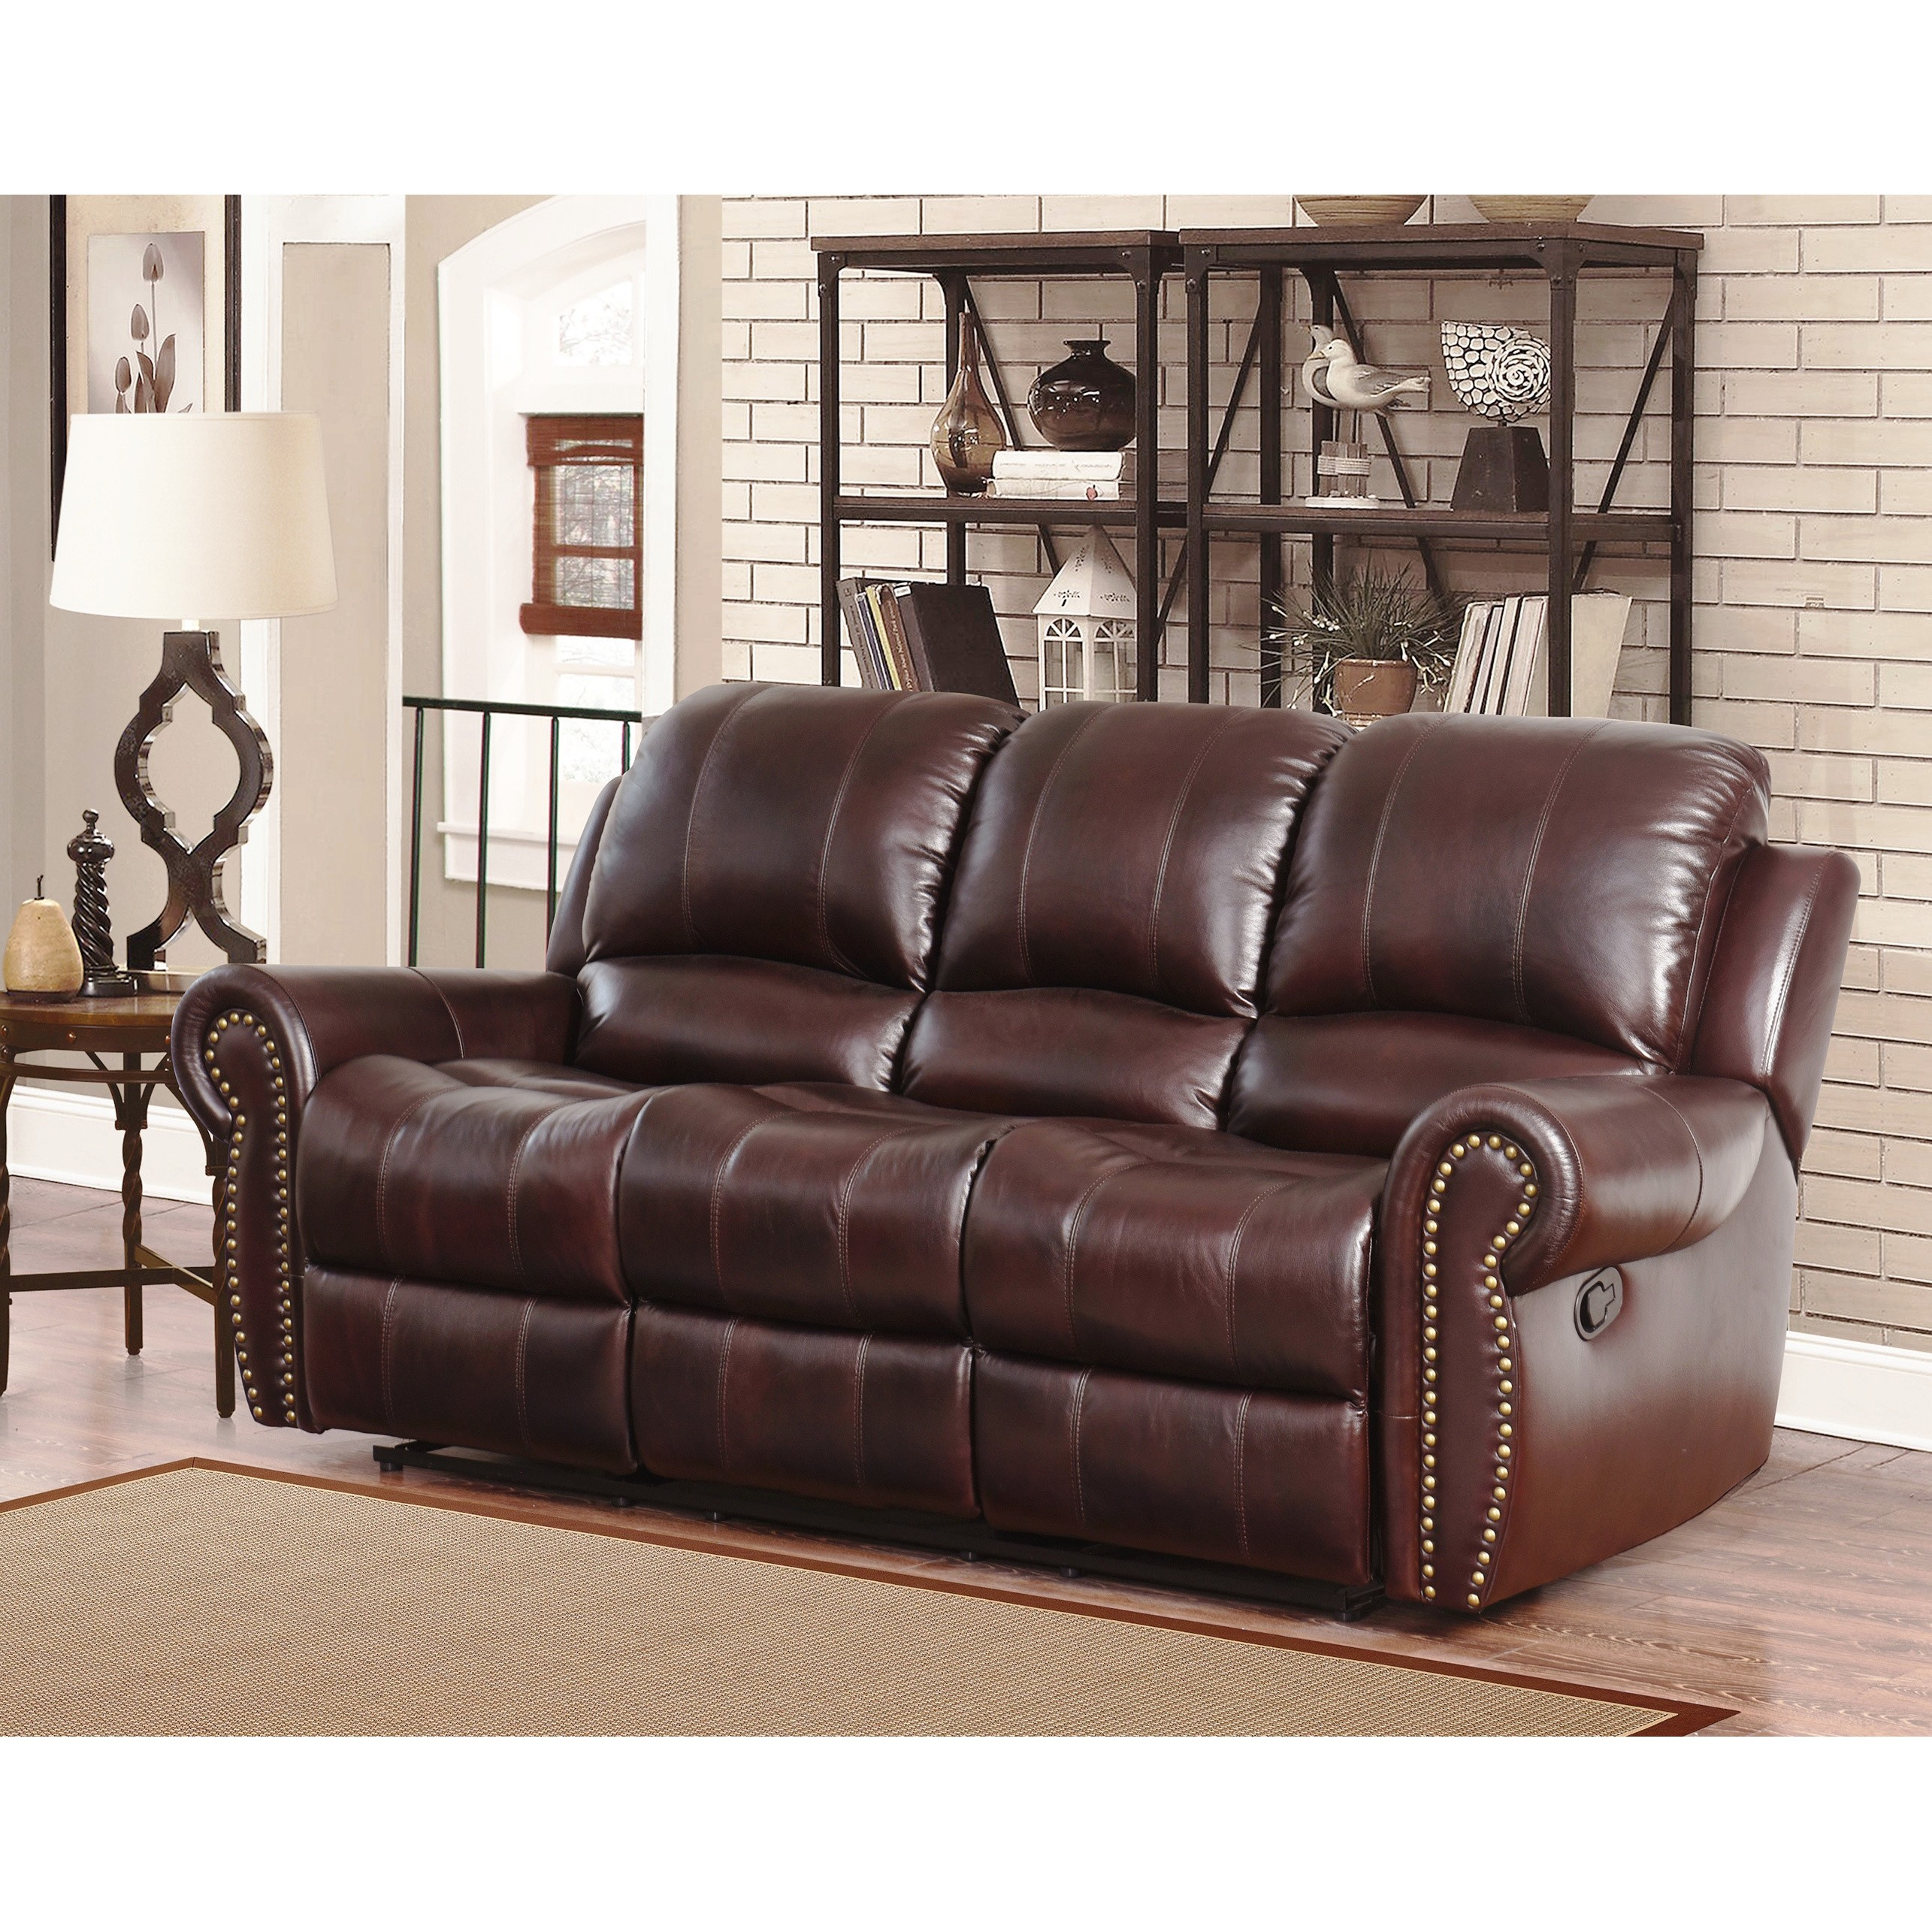 Distressed Leather Reclining Sofa